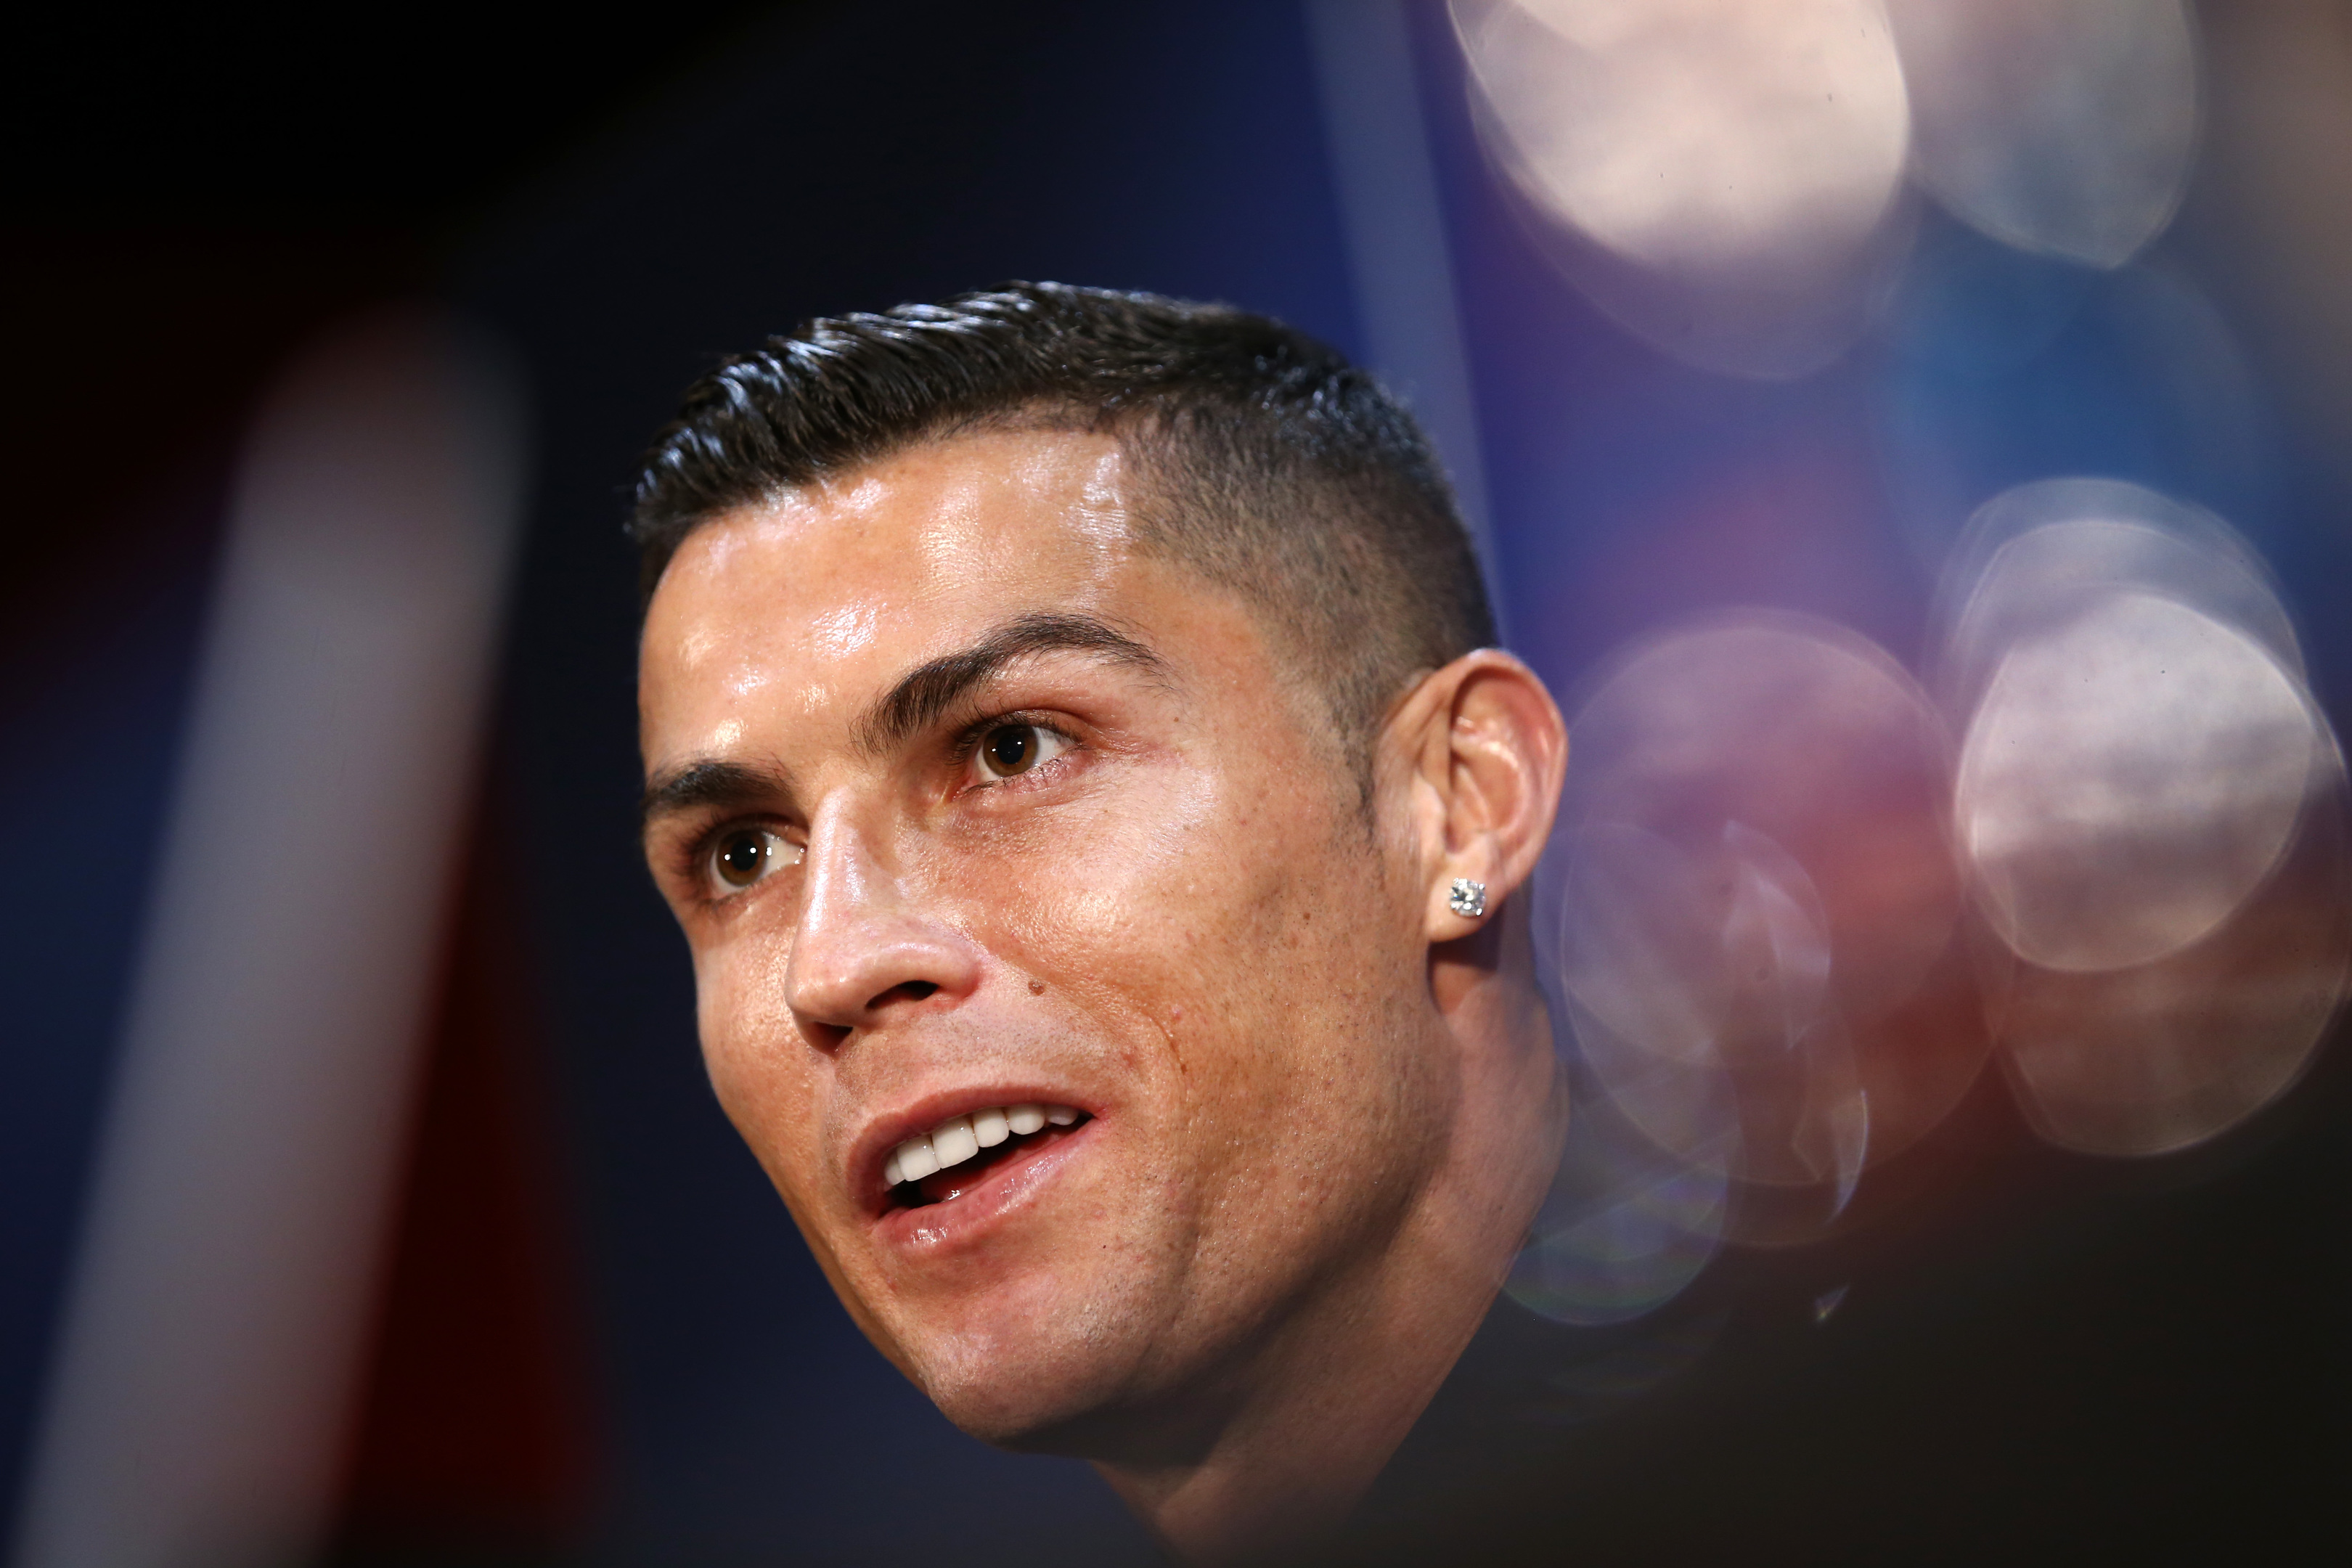 Cristiano Ronaldo (Jan Kruger/Getty Images)